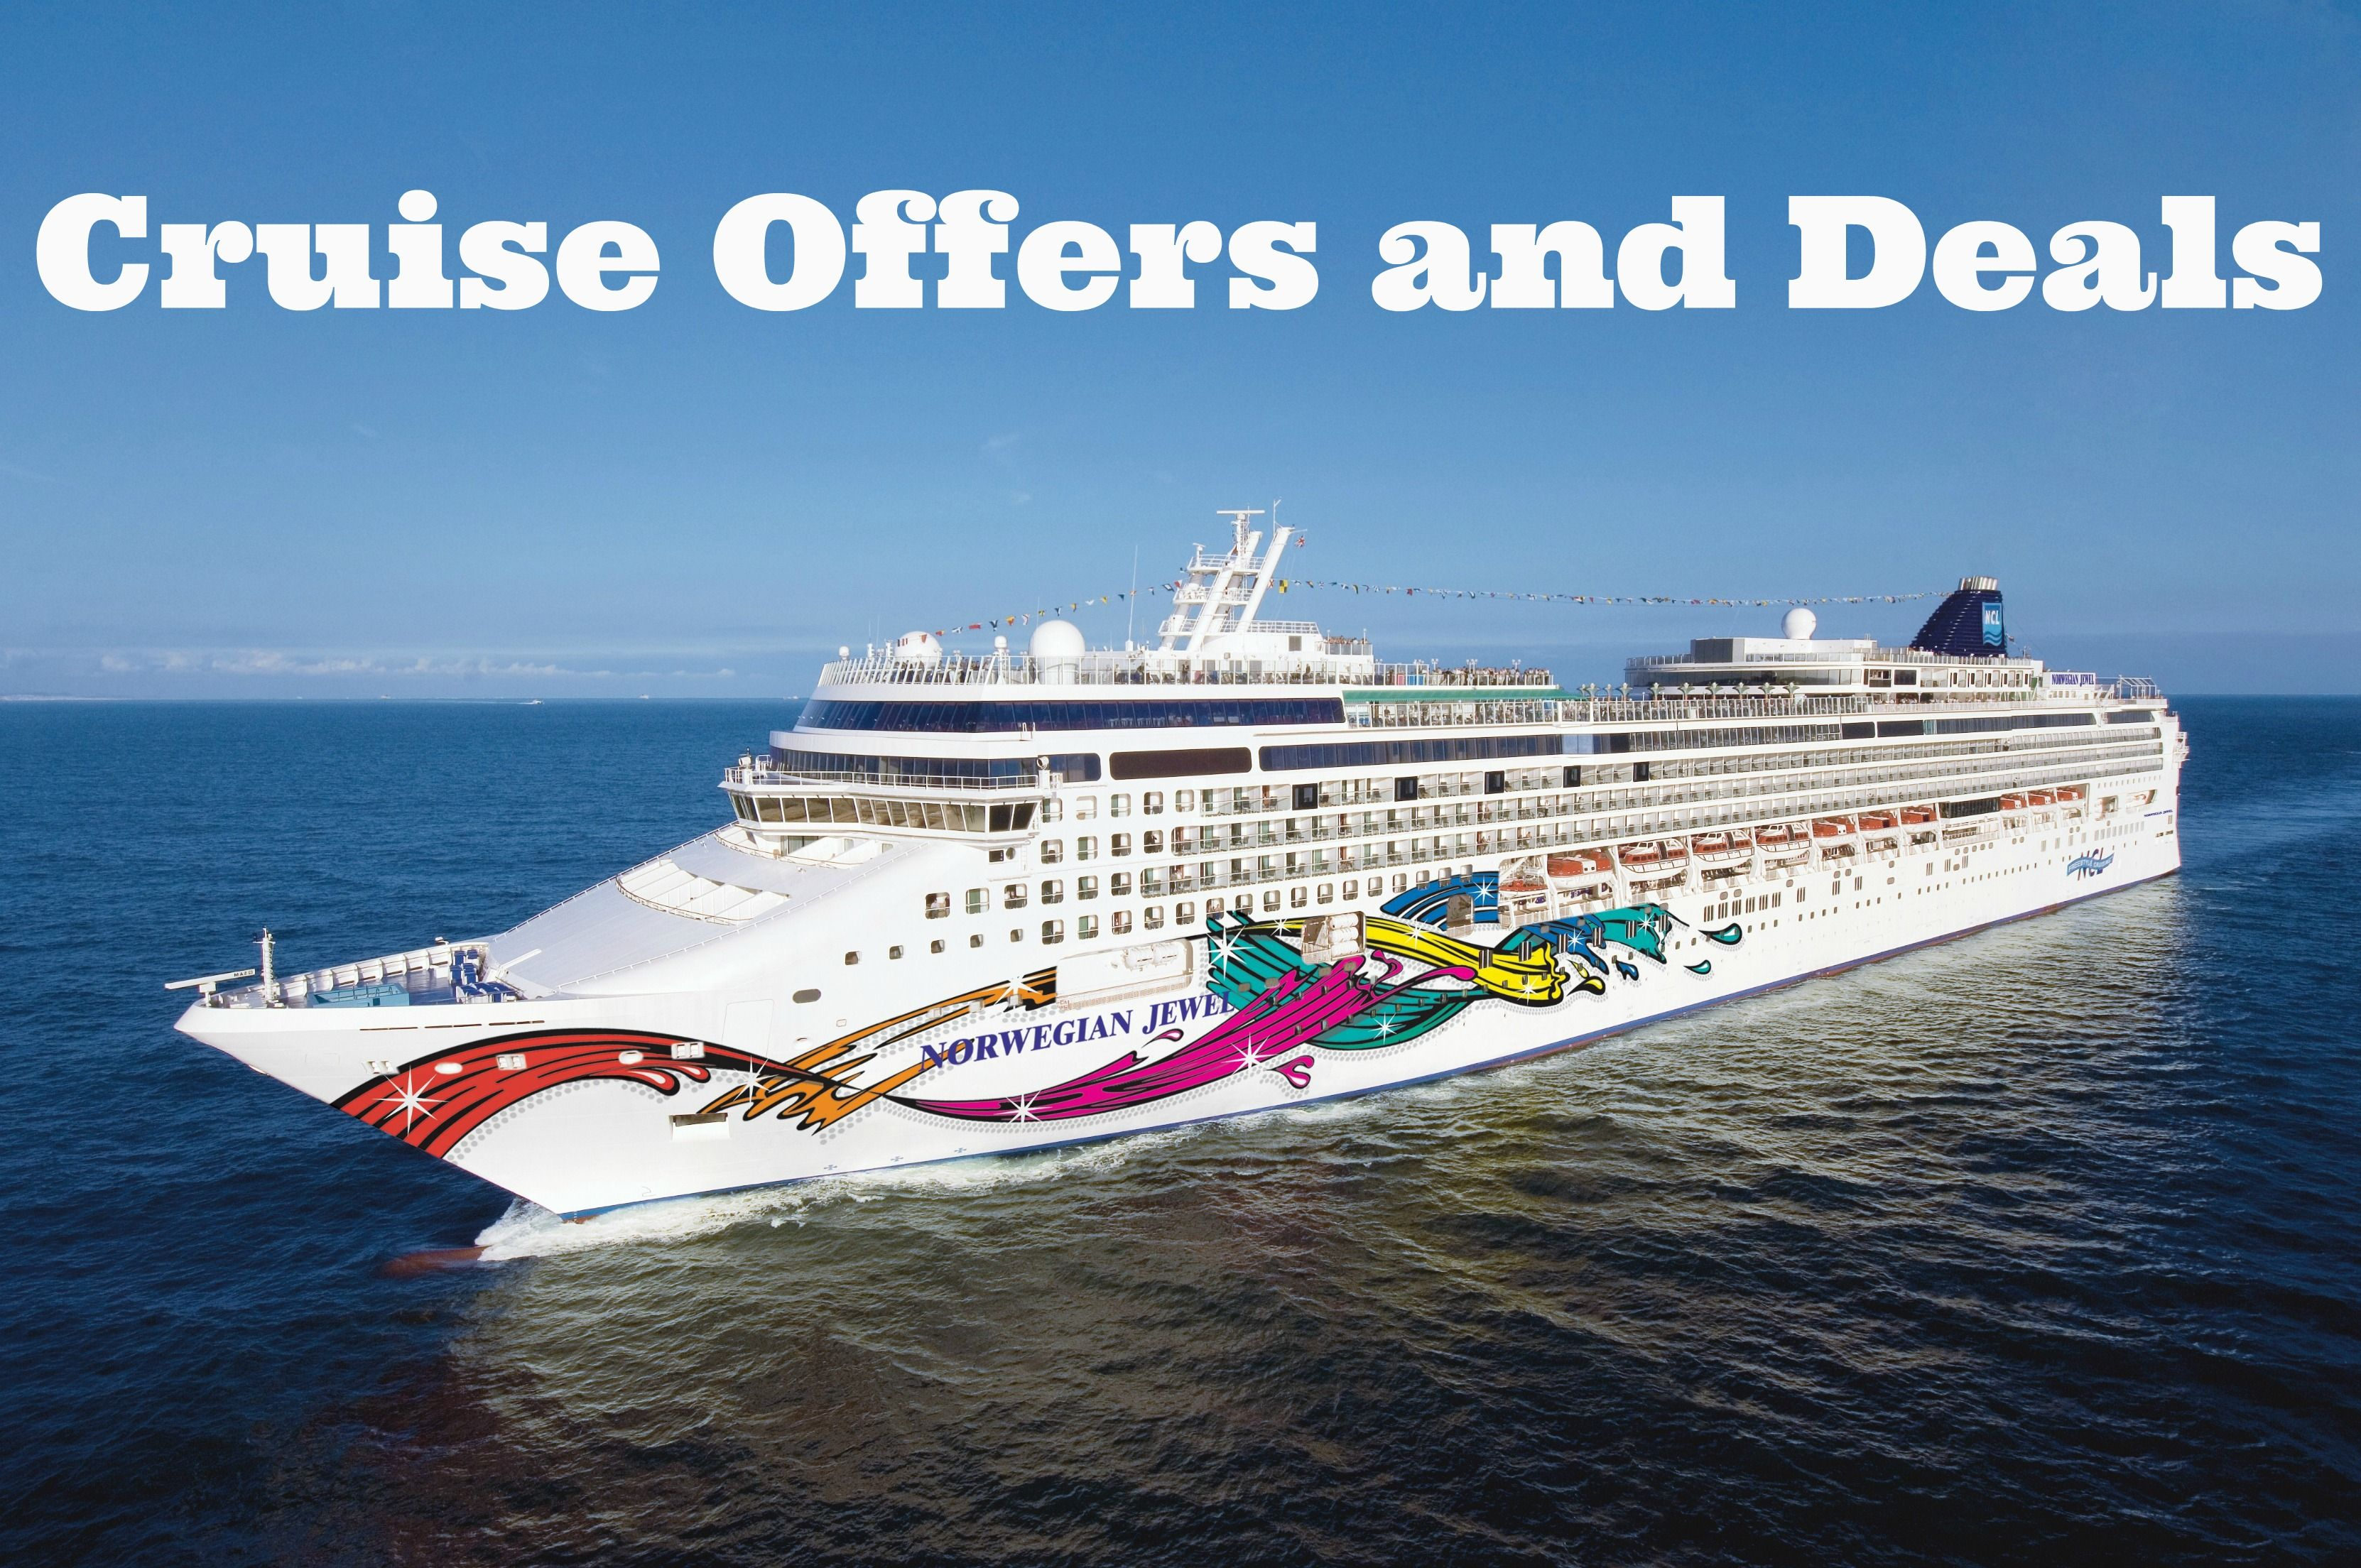 Cruise Offers And Deals From A Local Travel Agent, Located